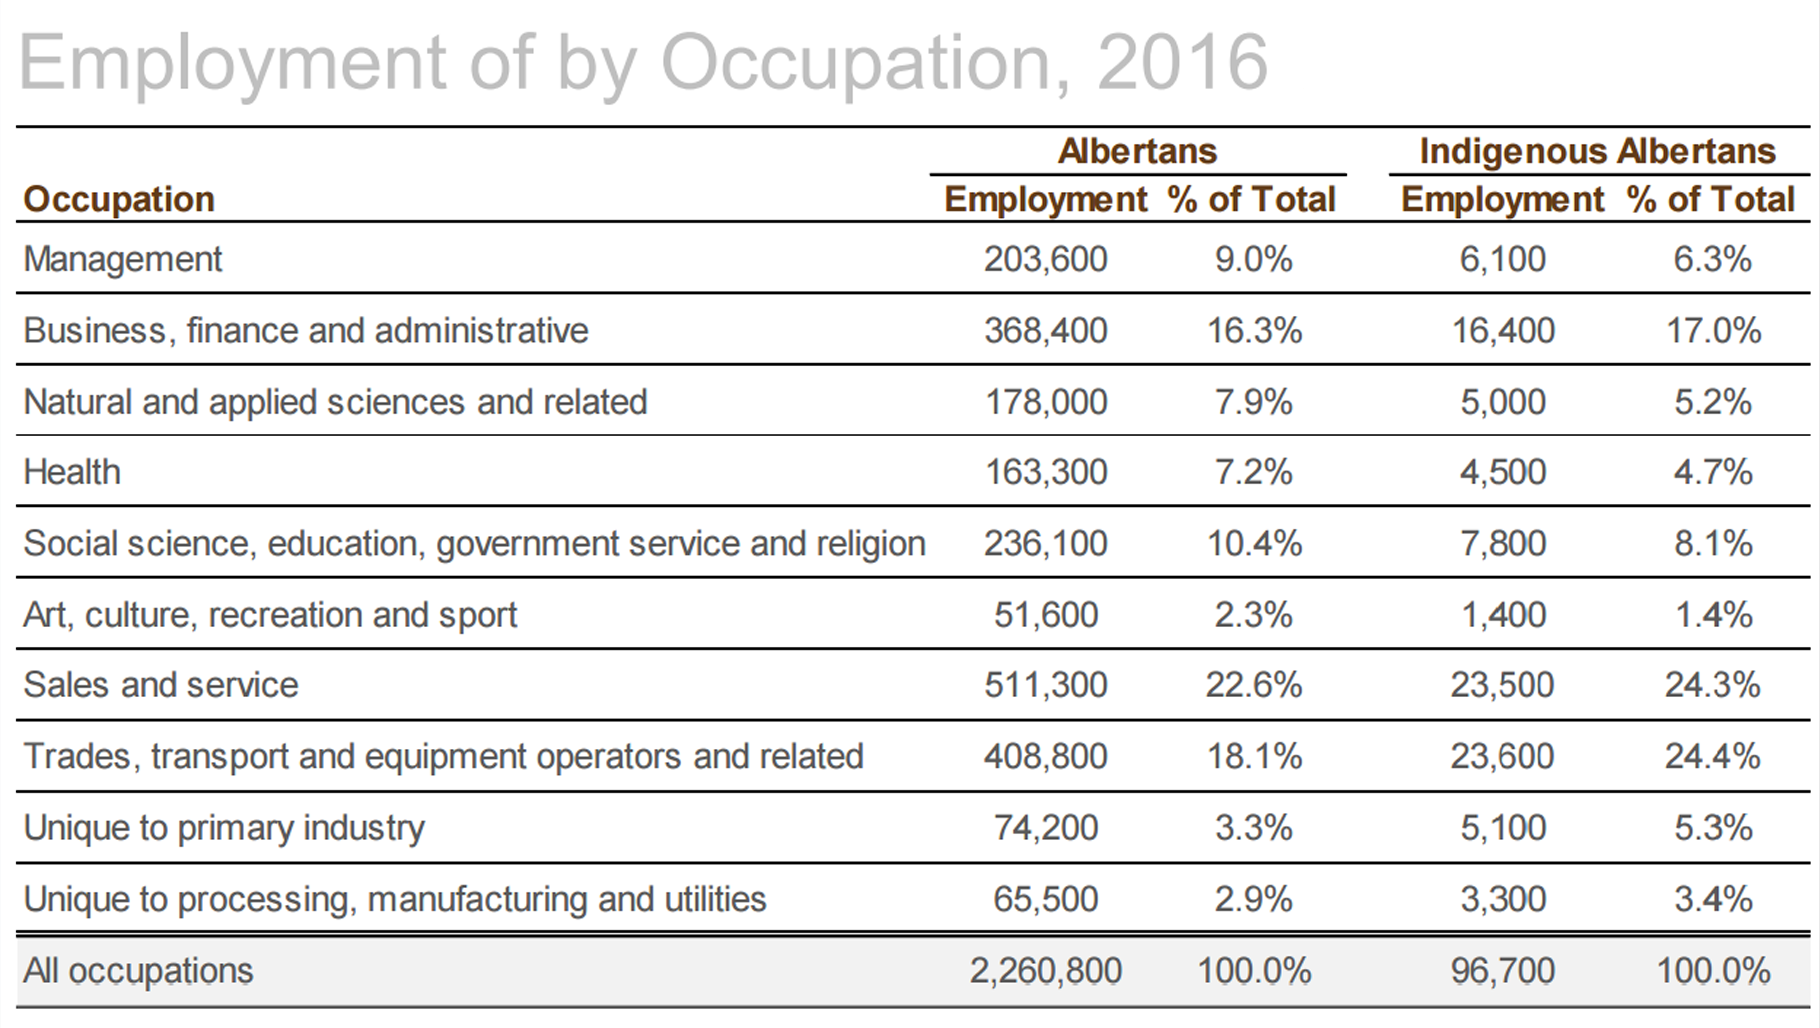 Indigenous occupations